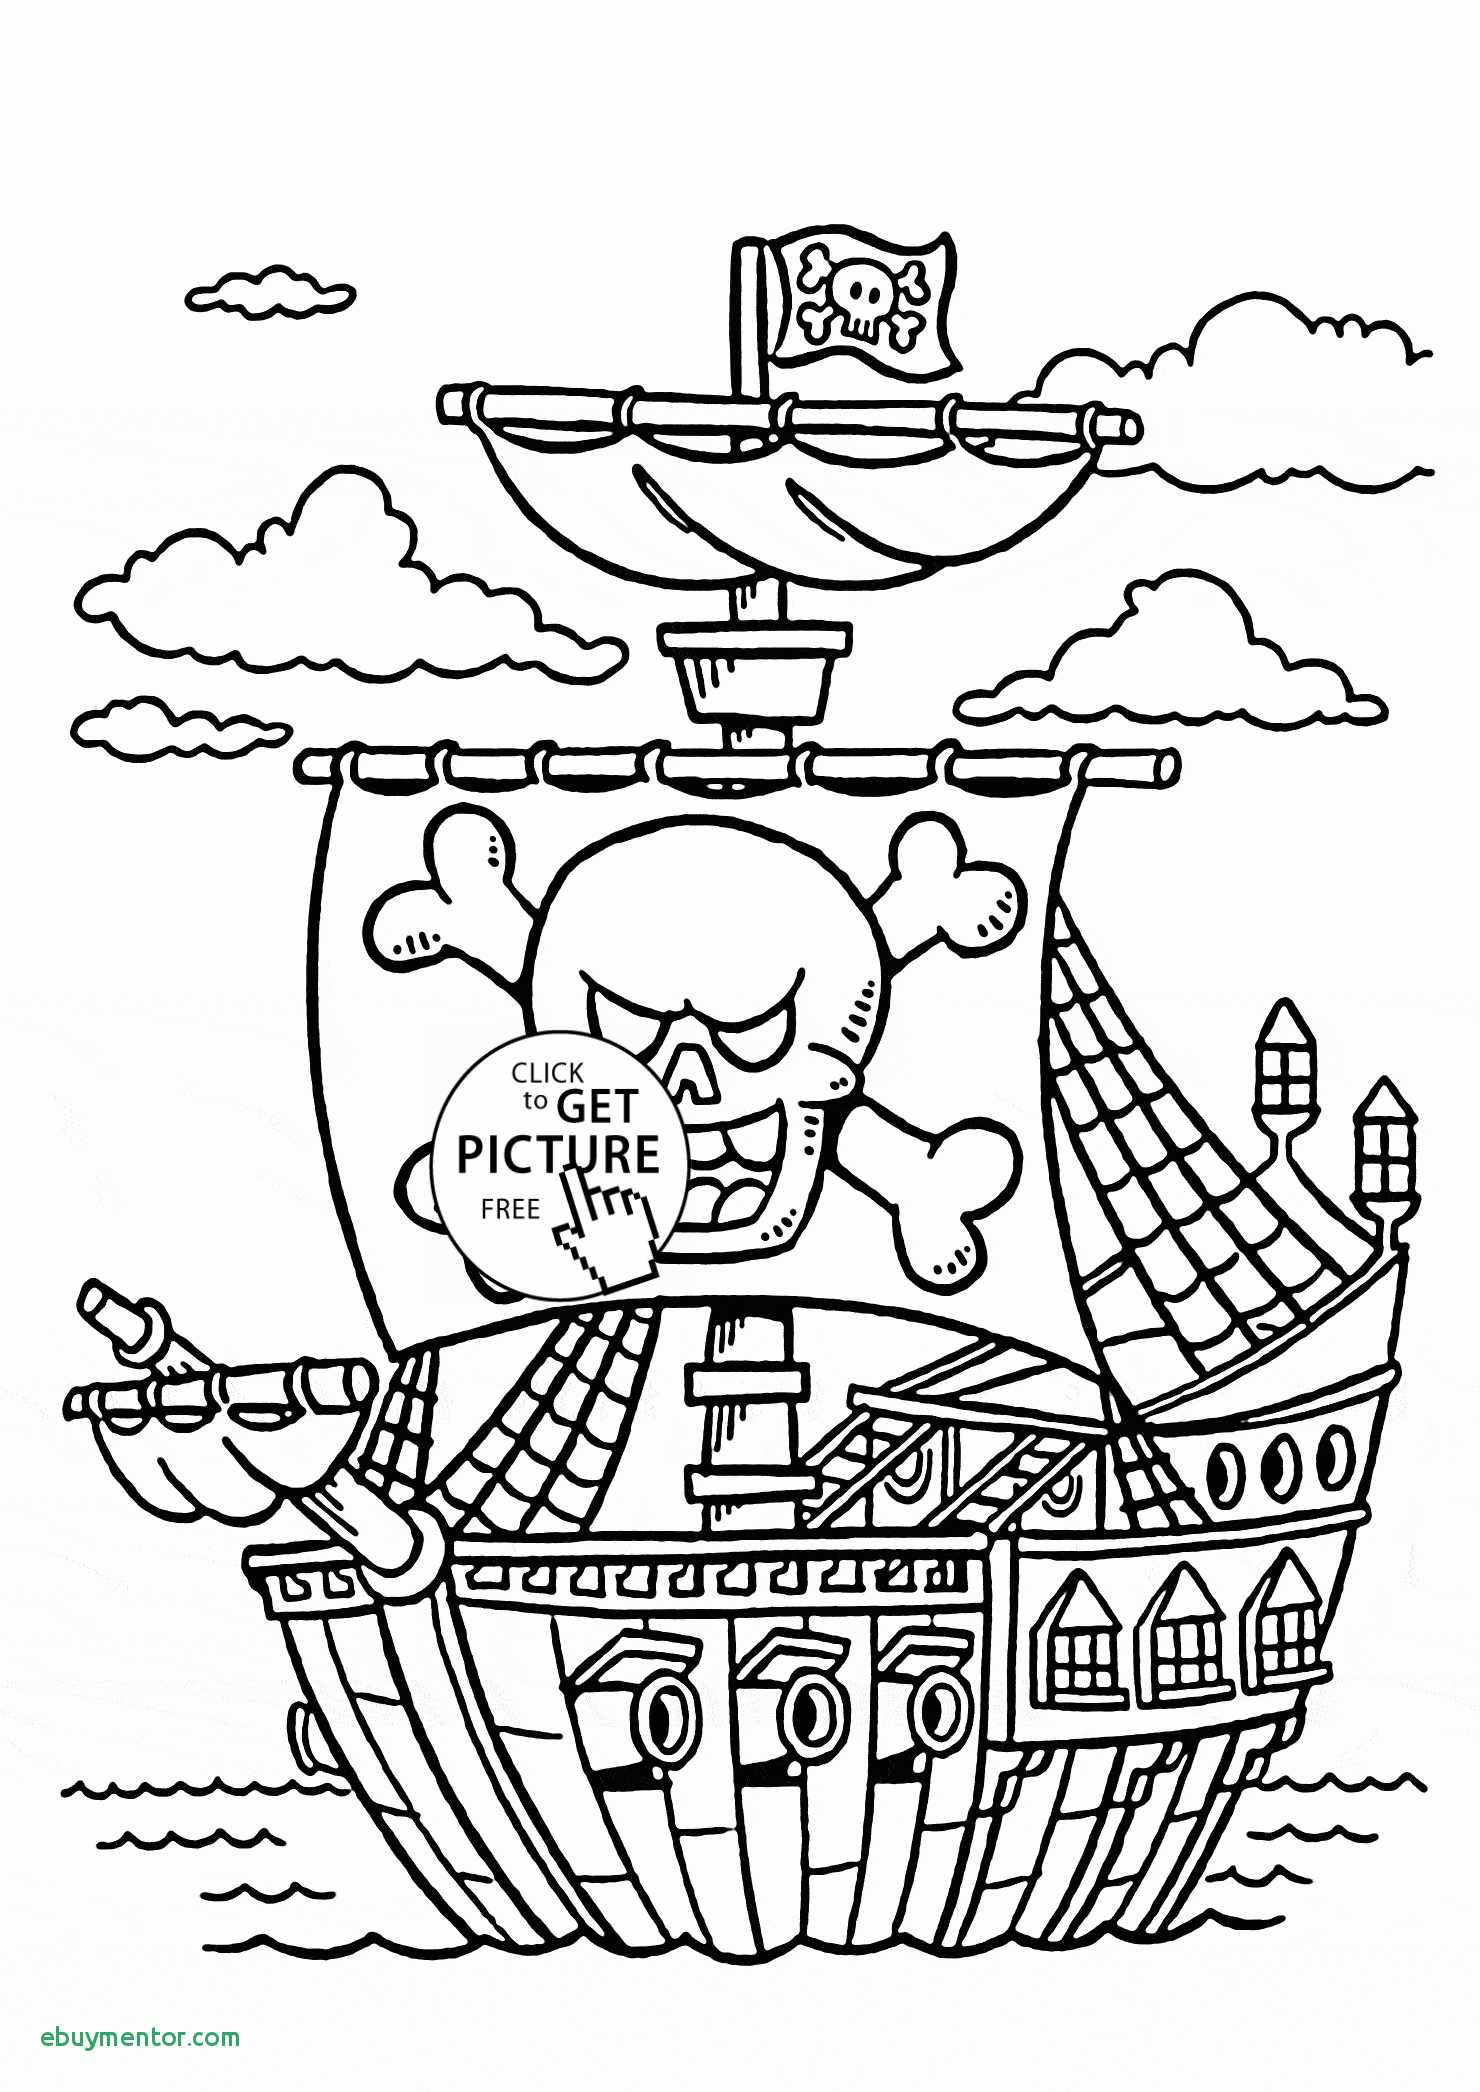 Pirate Ship Drawing For Kids At Paintingvalley